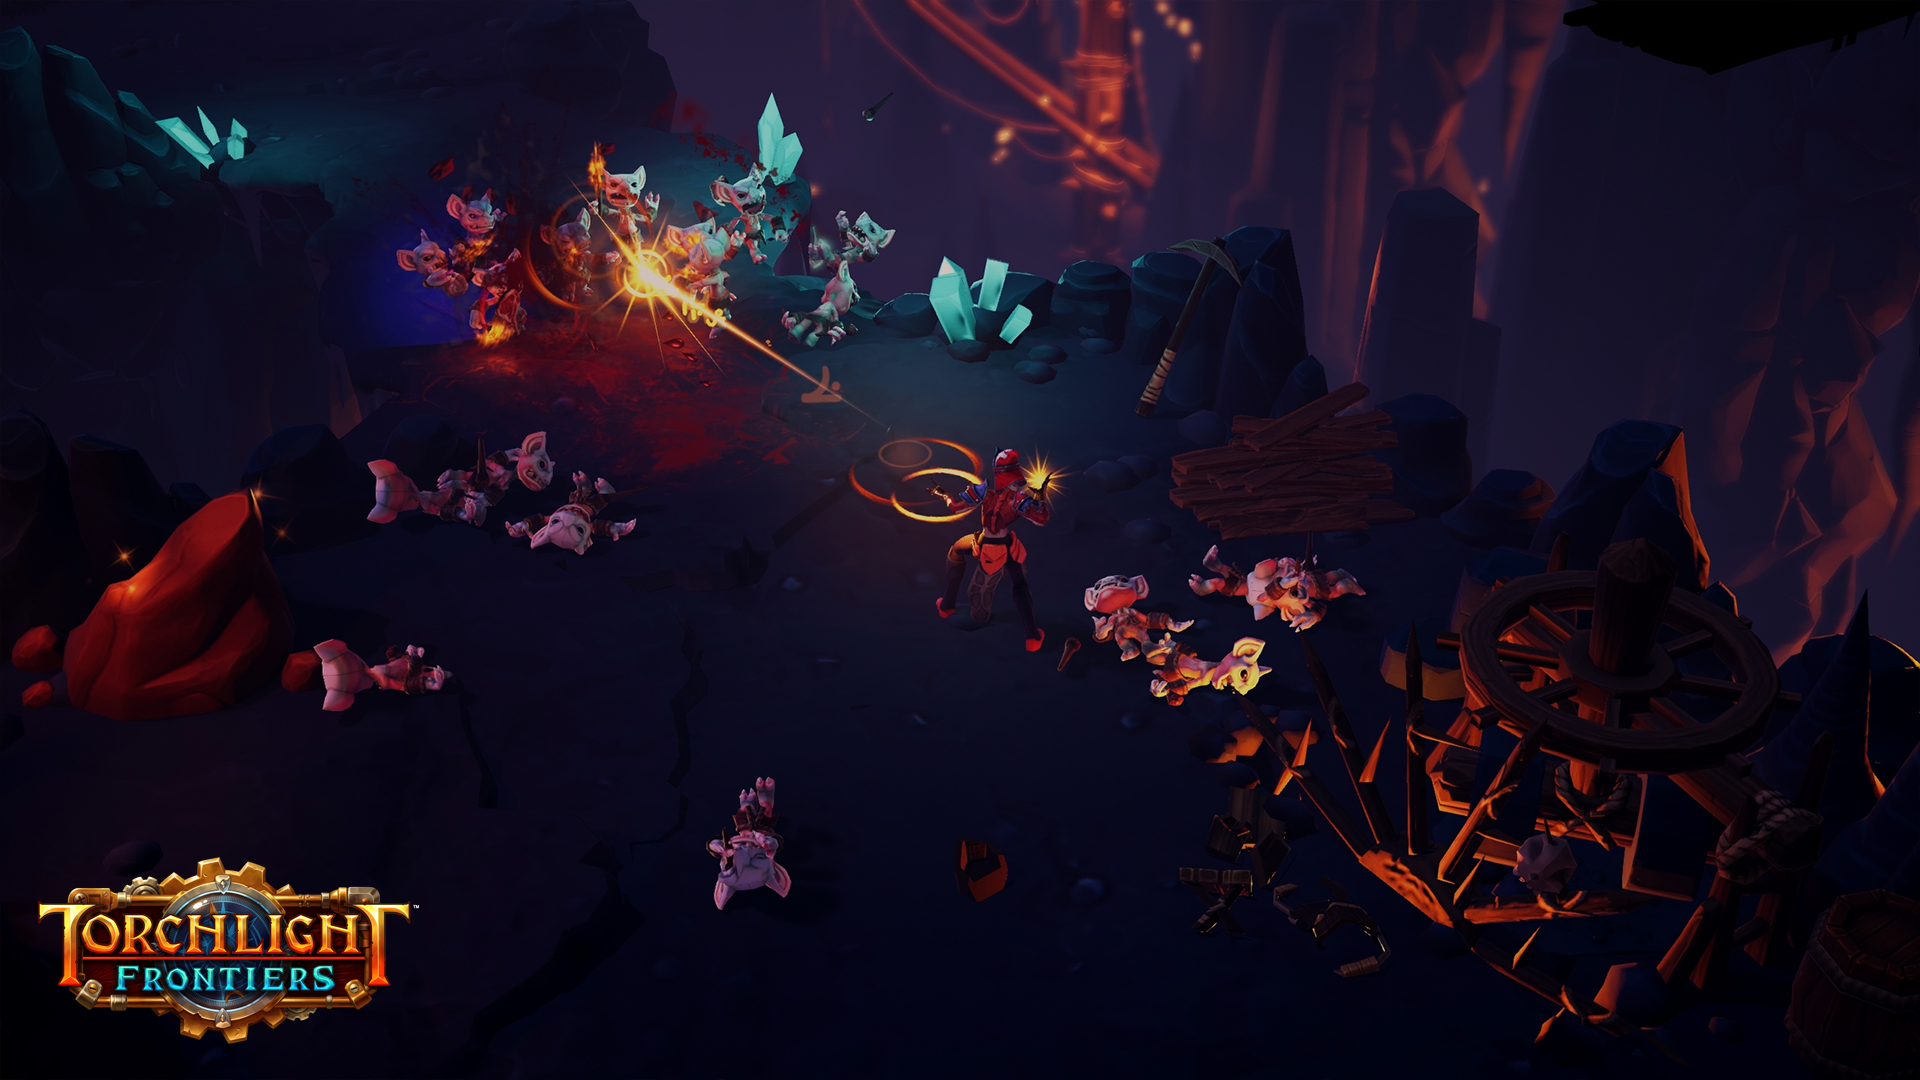 TorchlightFrontiers_Gameplay_Screenshots_02.png